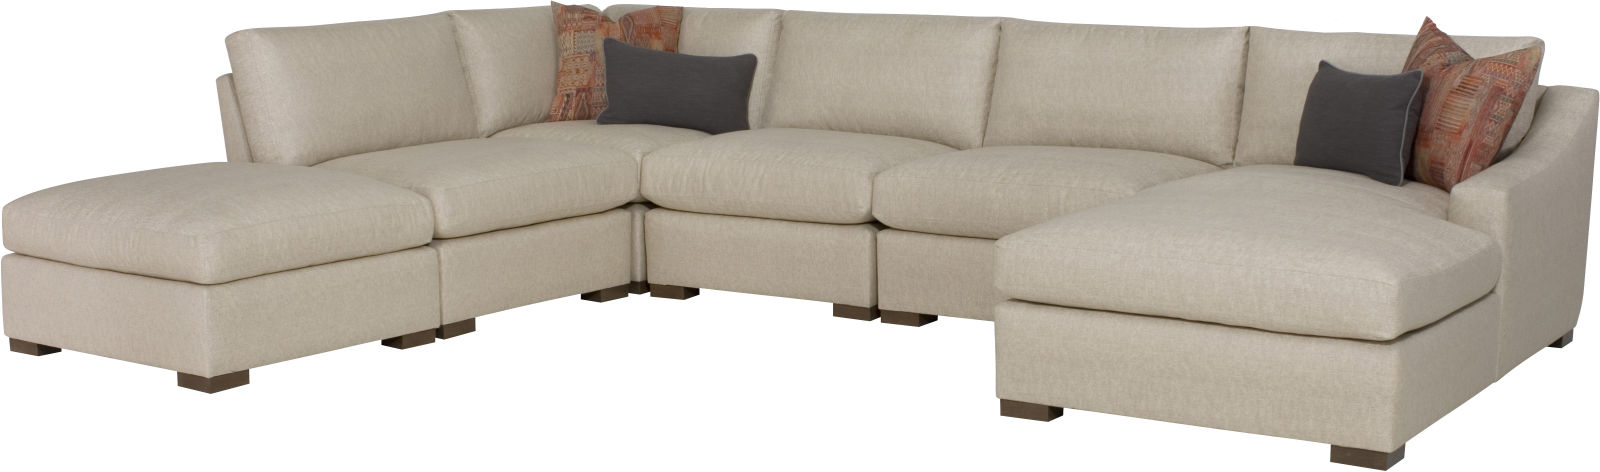 Wesley Hall Furniture - Hickory NC - PRODUCT PAGE - 1998 Sectional Sectional ?  sc 1 st  Wesley Hall : wesley hall sectional - Sectionals, Sofas & Couches